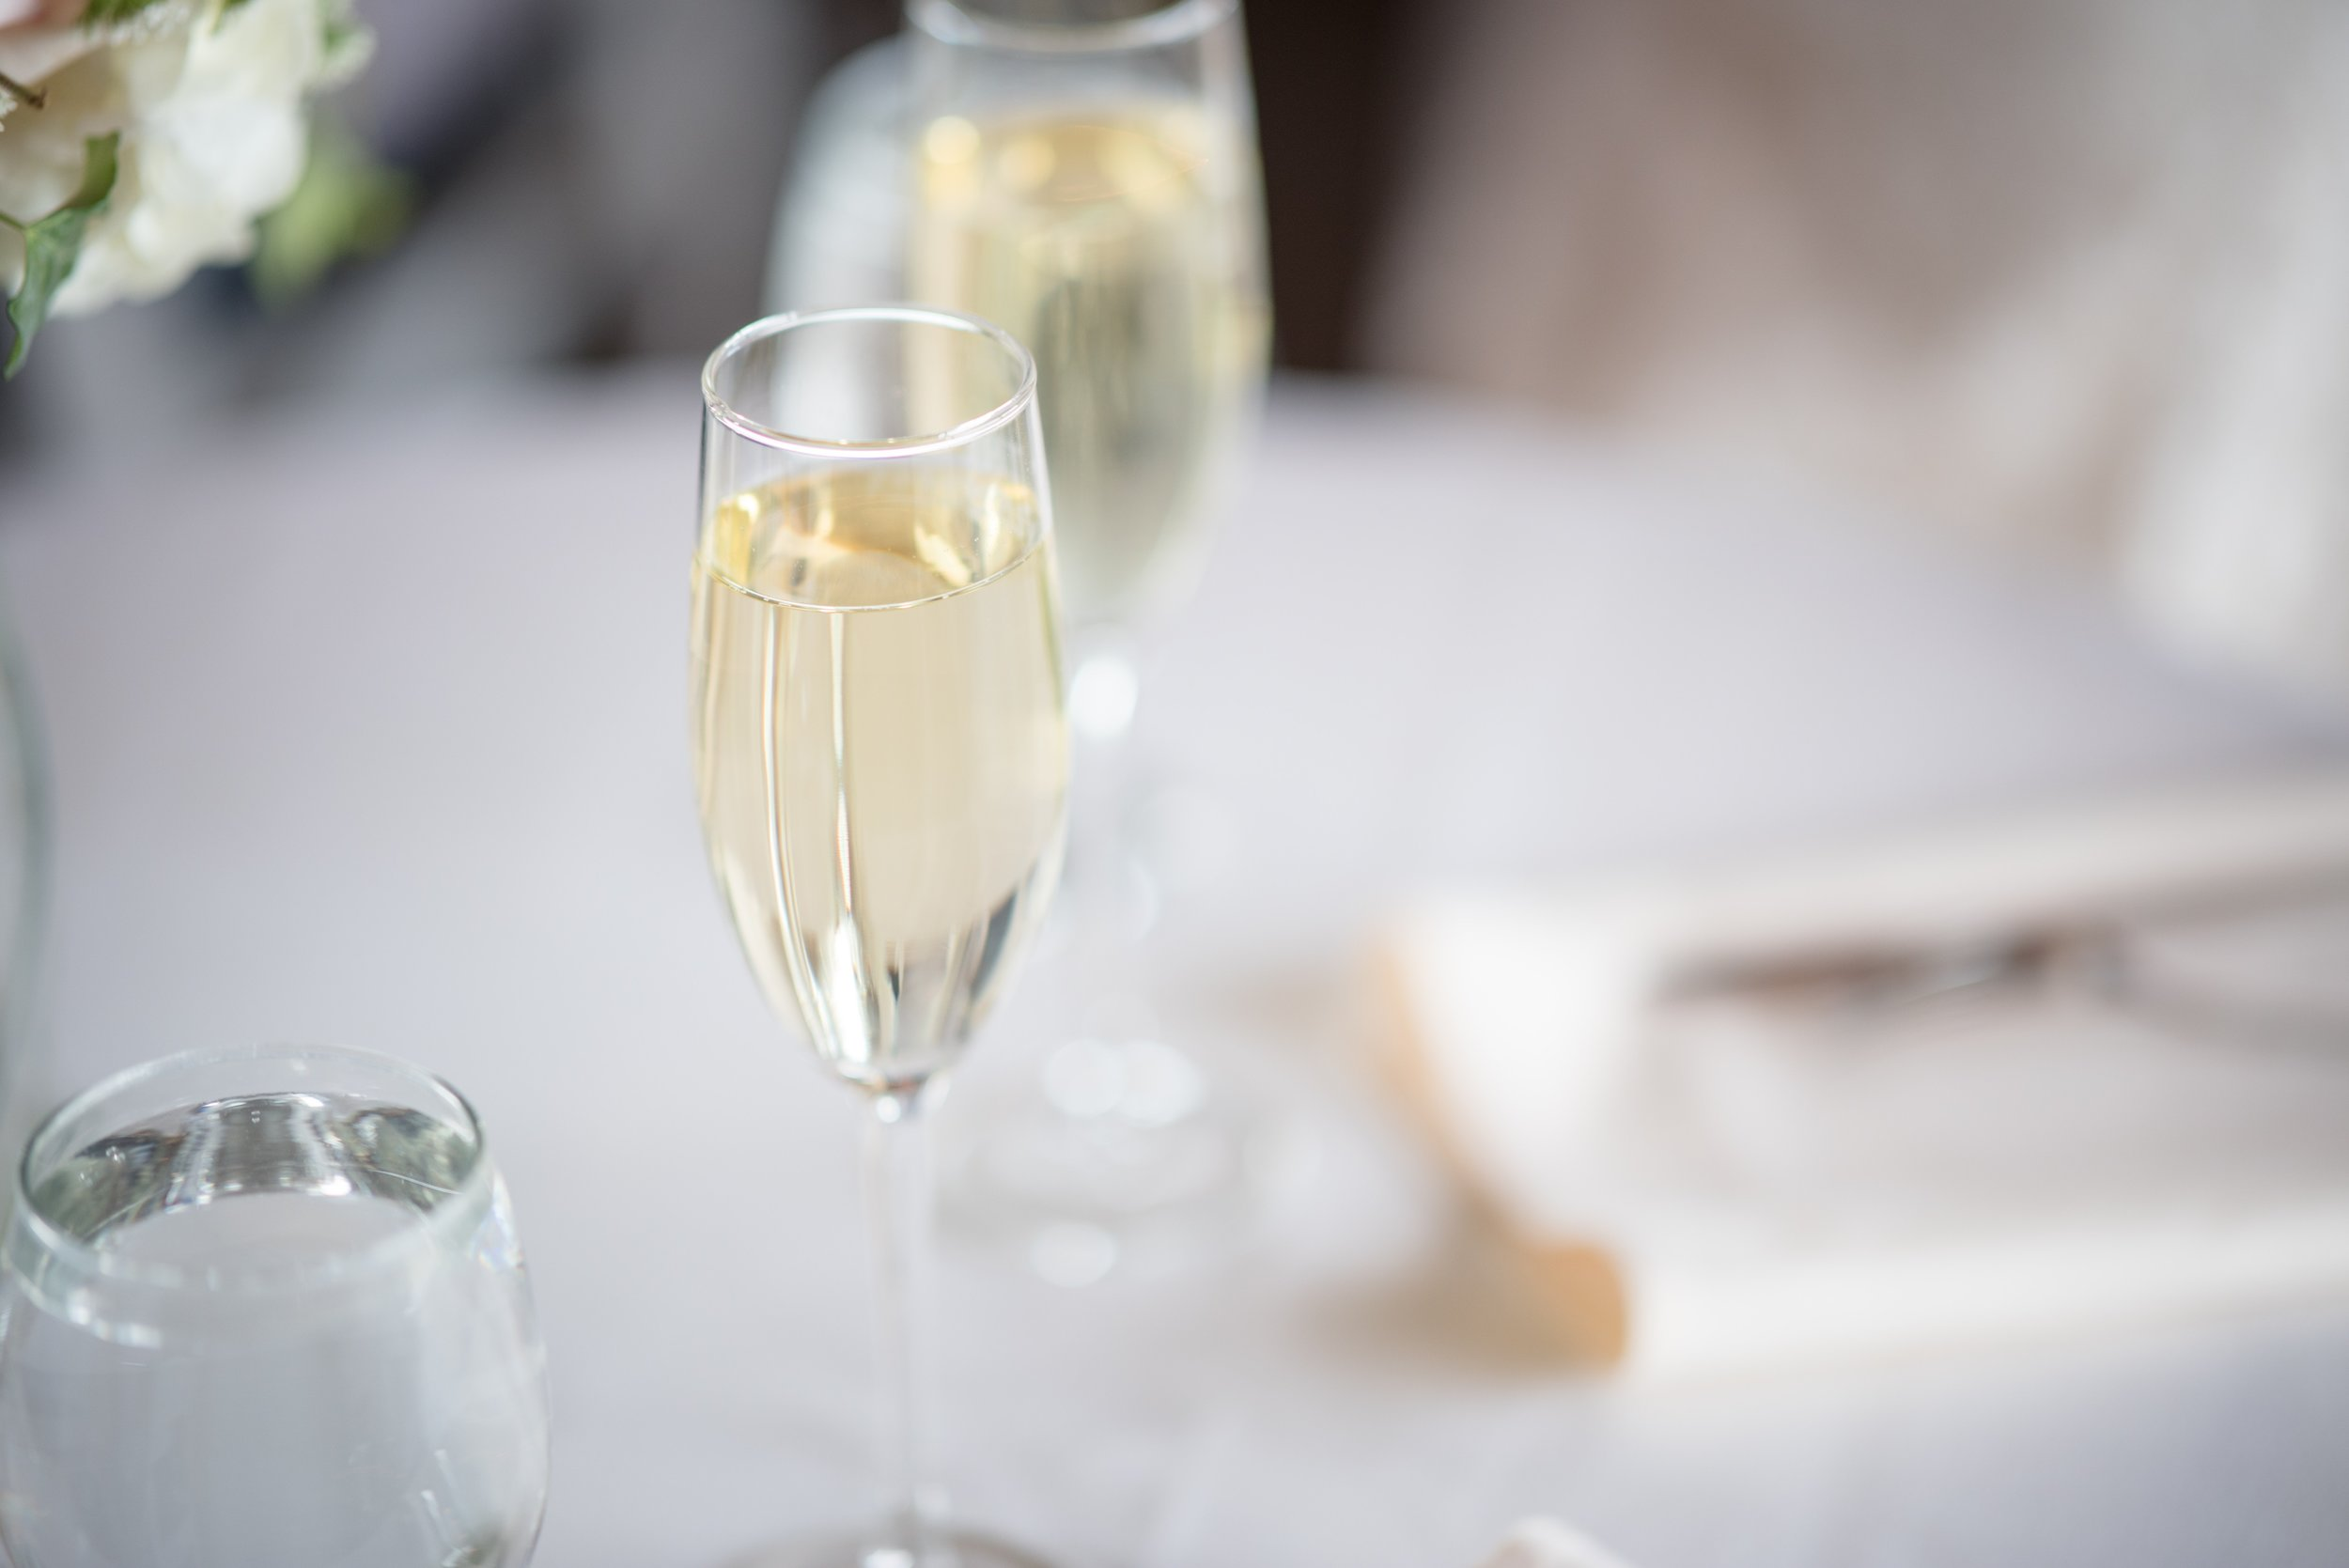 blurred-background-champagne-close-up-1711316.jpg